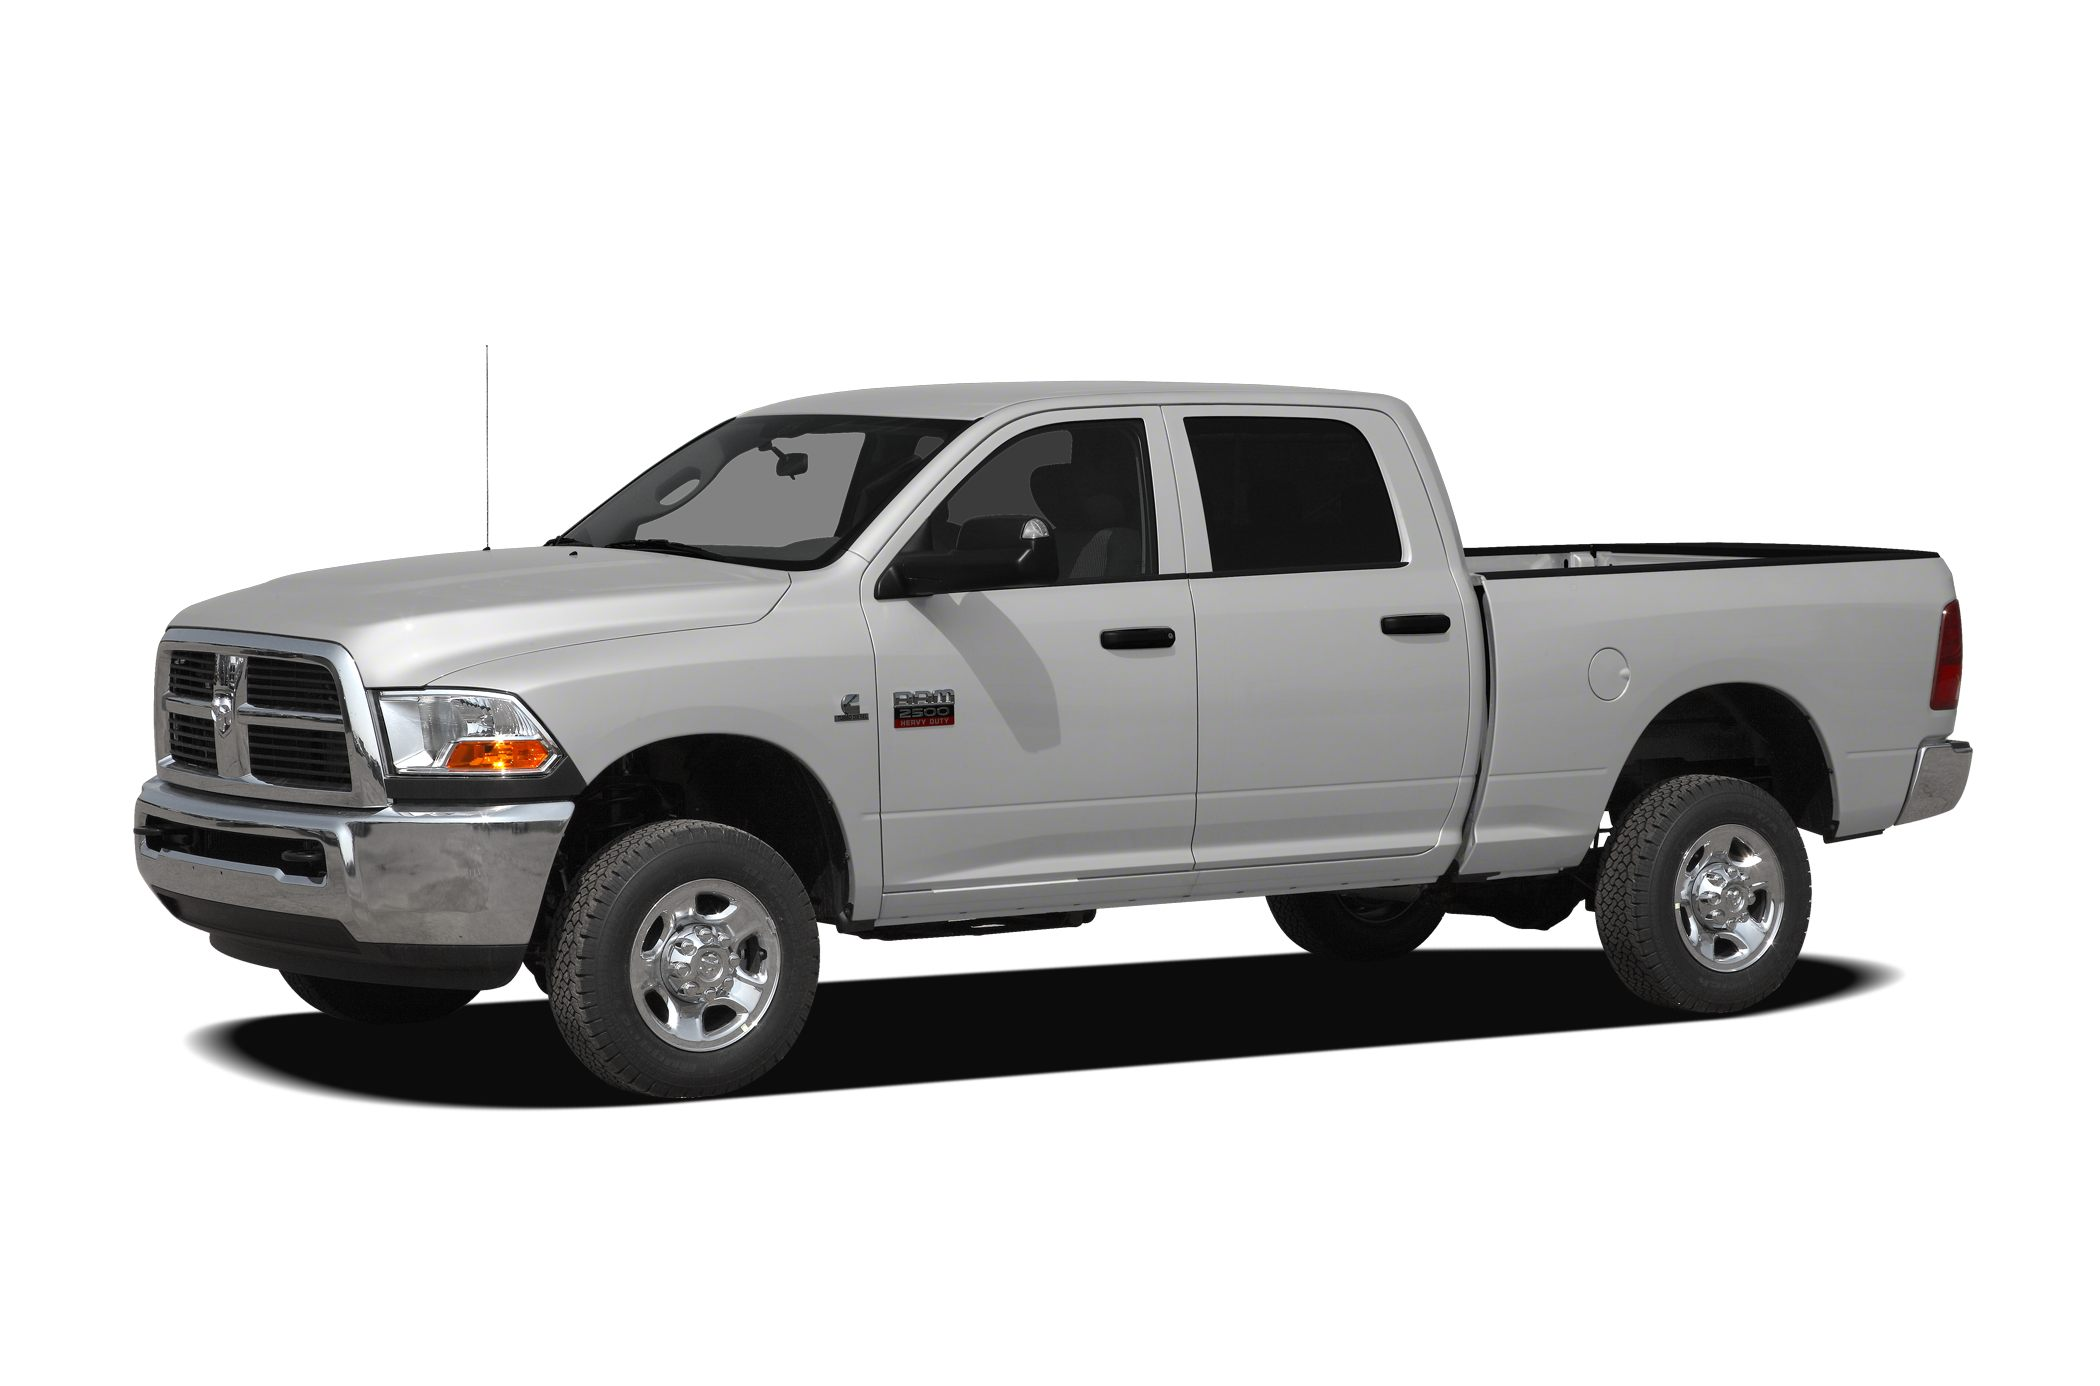 2012 RAM 2500 SLT This Green 2012 RAM 2500 SLT might be just the crew cab 4x4 for you It has a 6